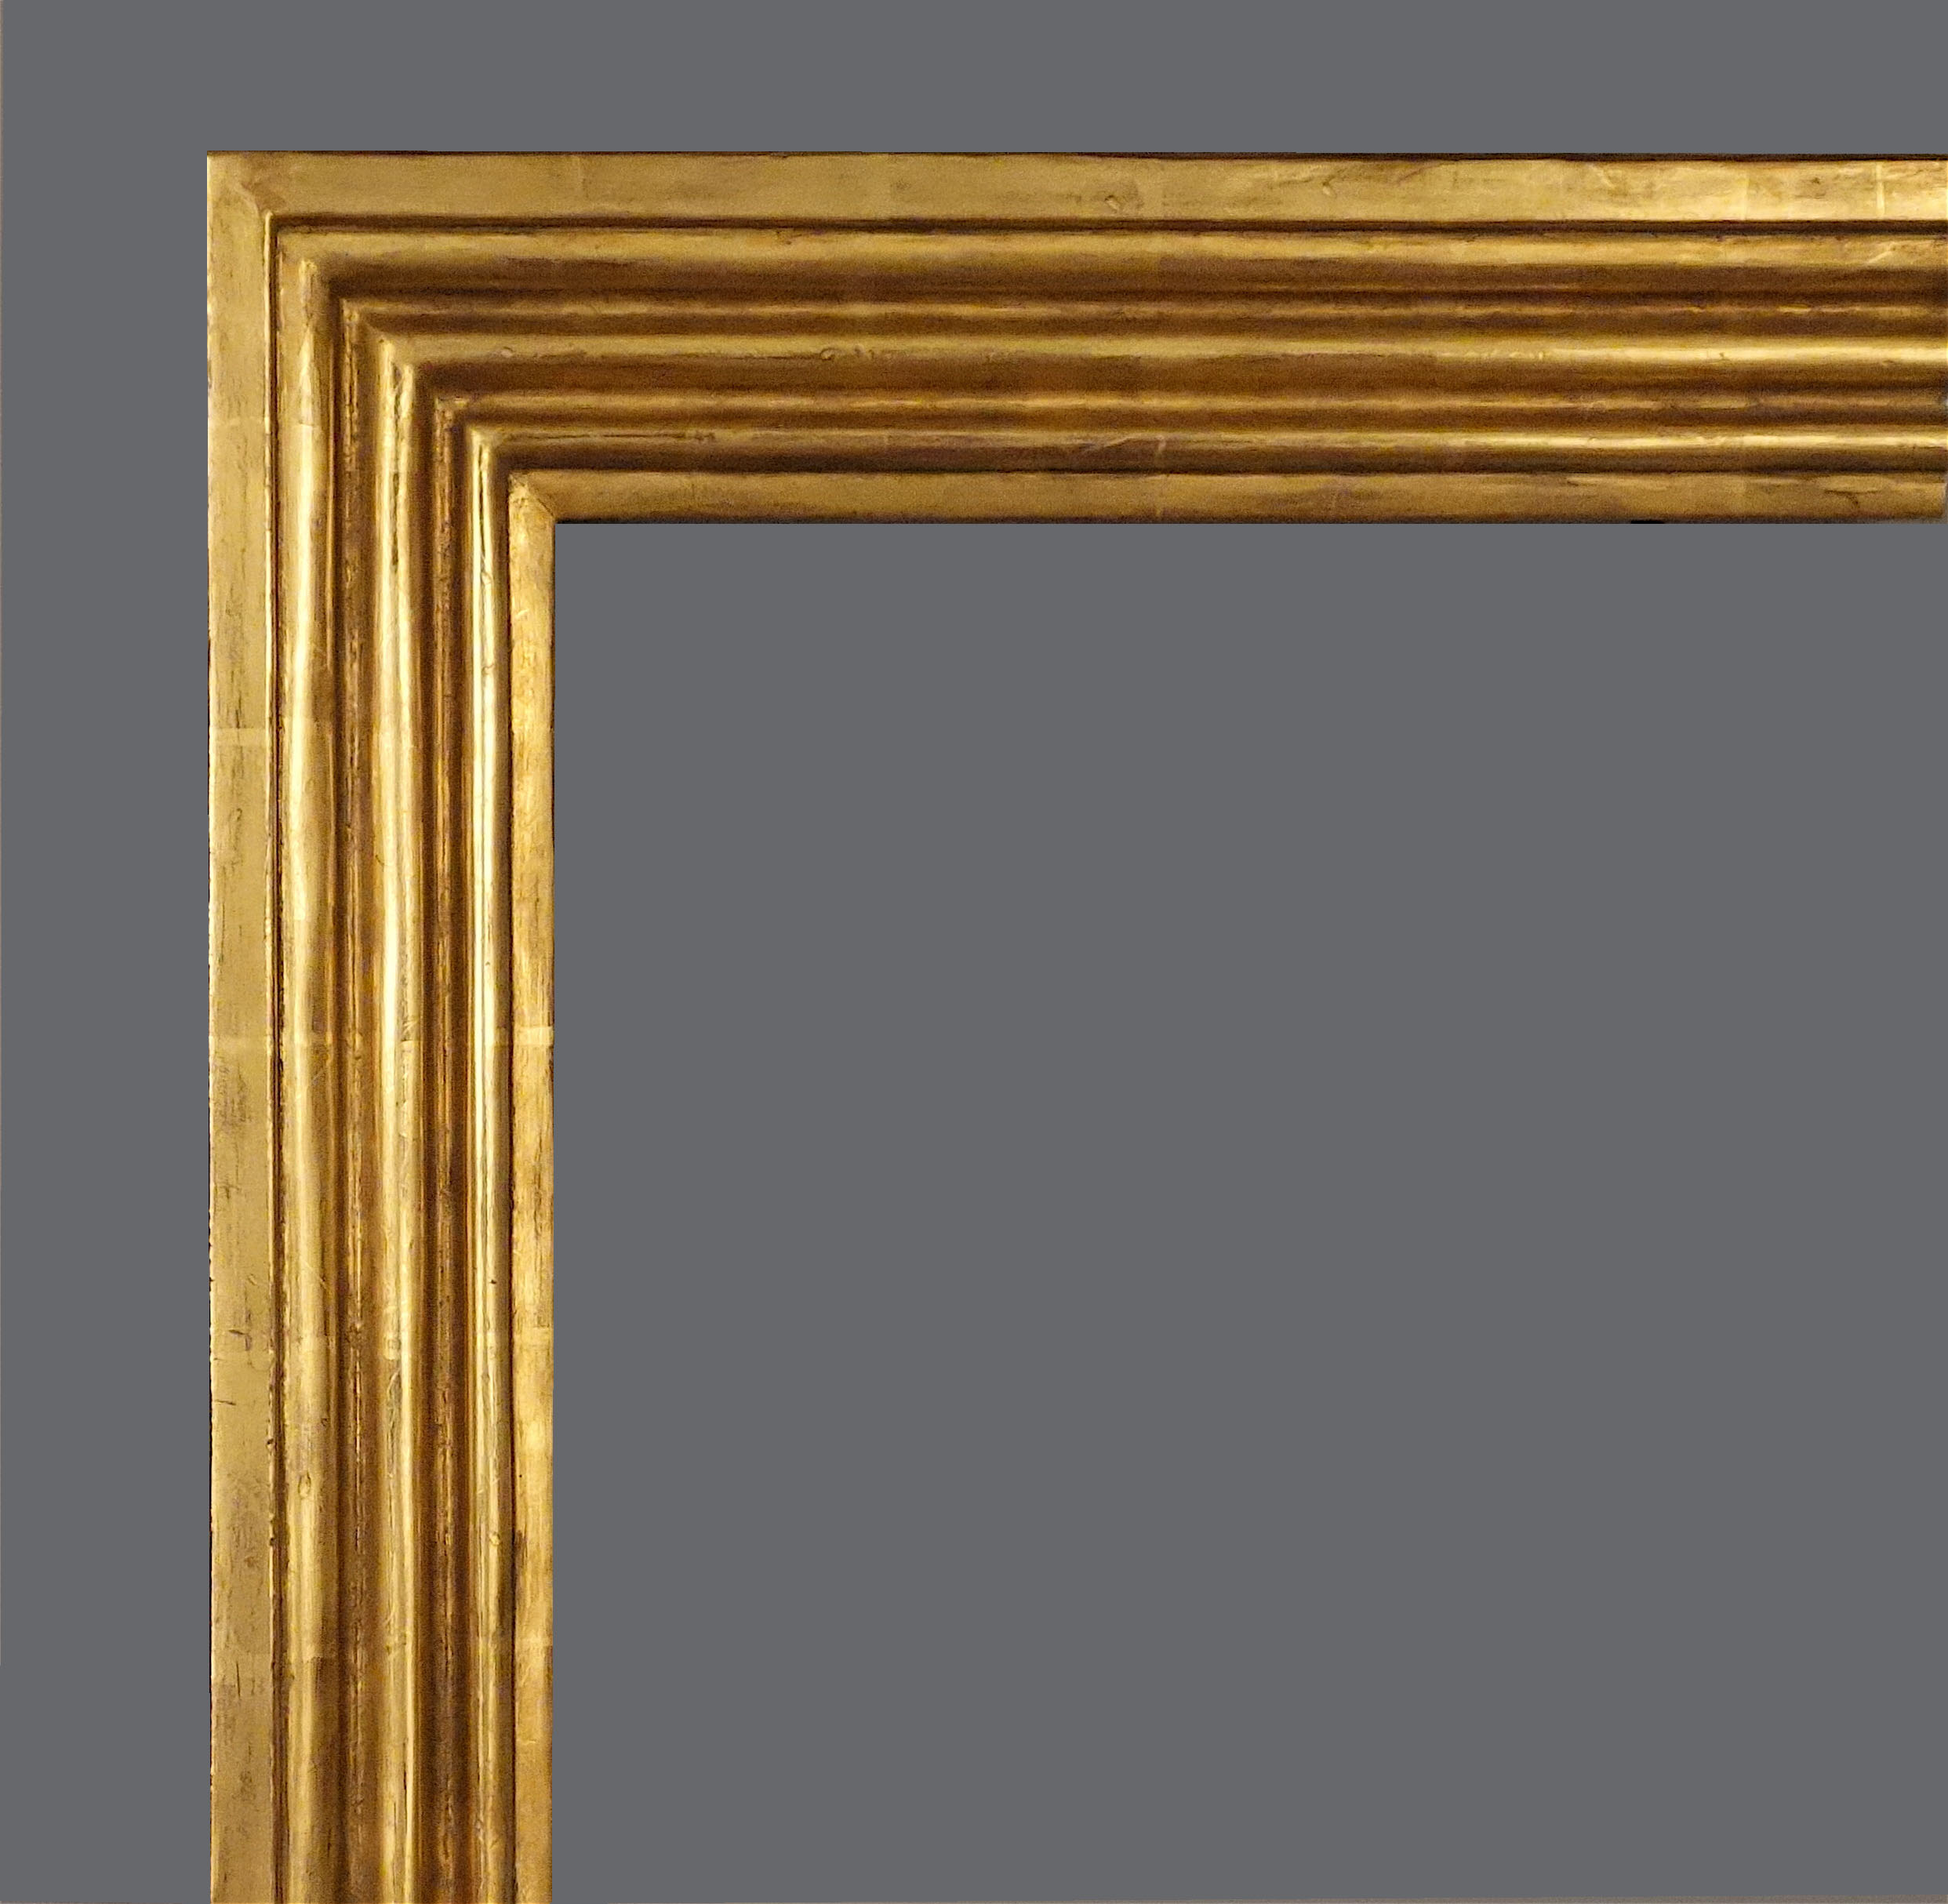 Modern And Contemporary Frames Atelier Richard Boerth